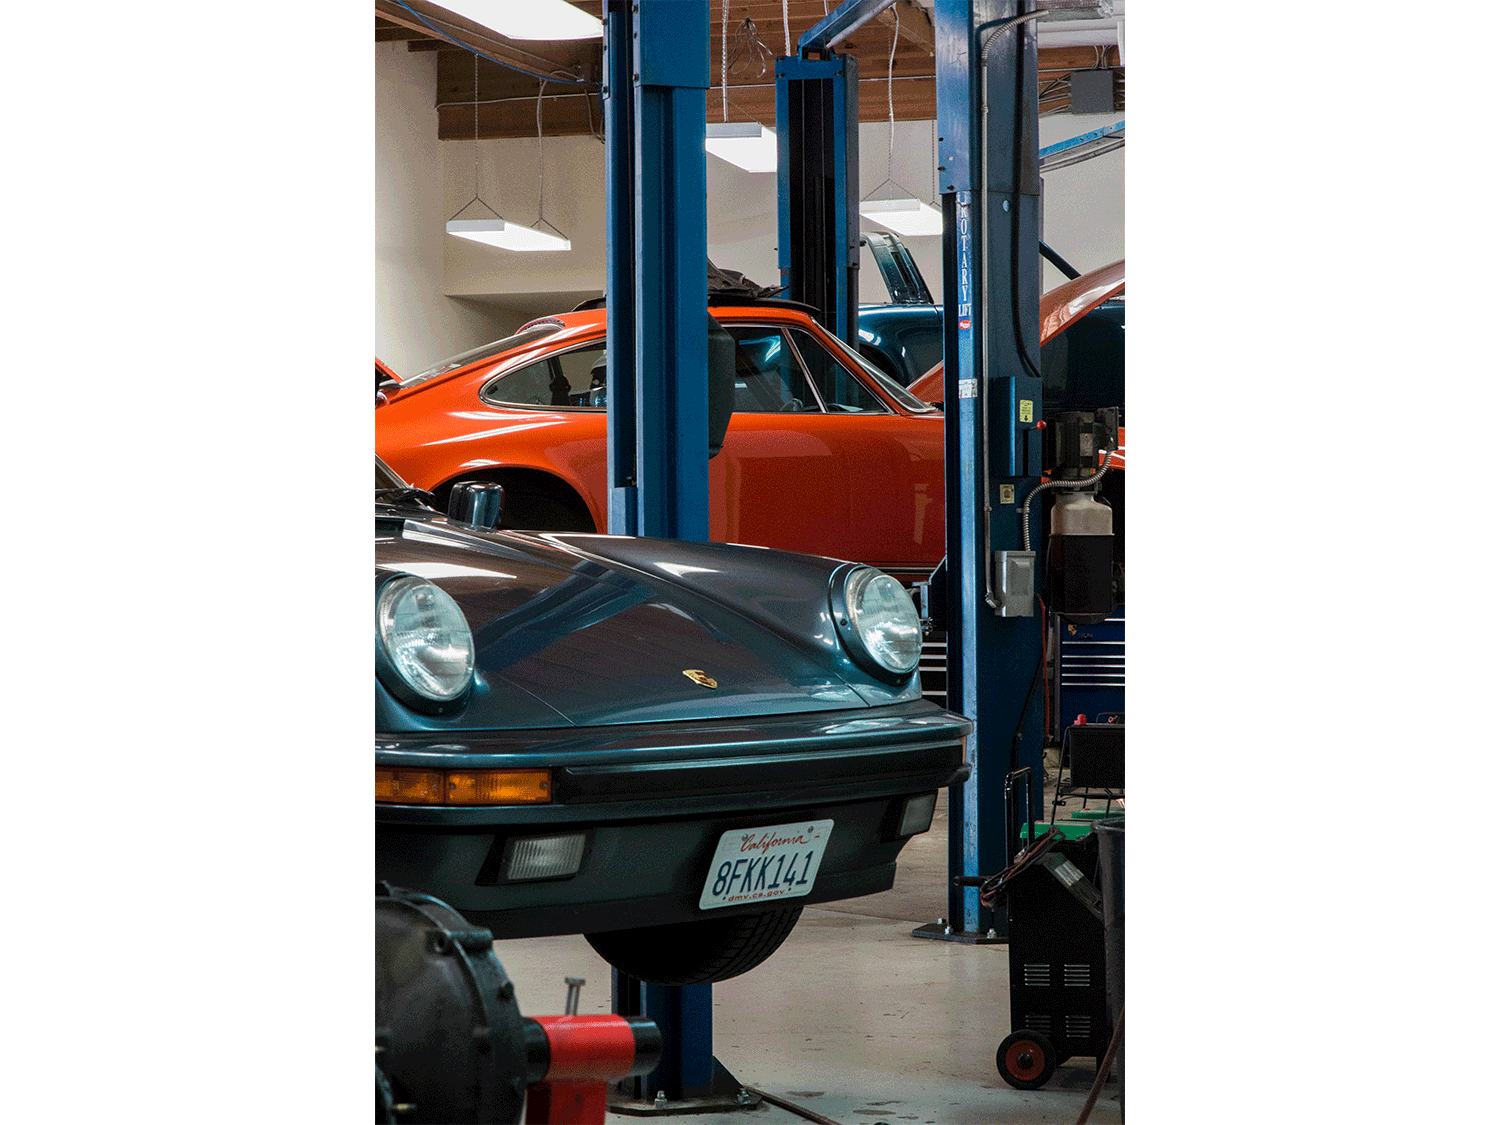 best-porsche-service-shop-escondido-california-san-diego.png